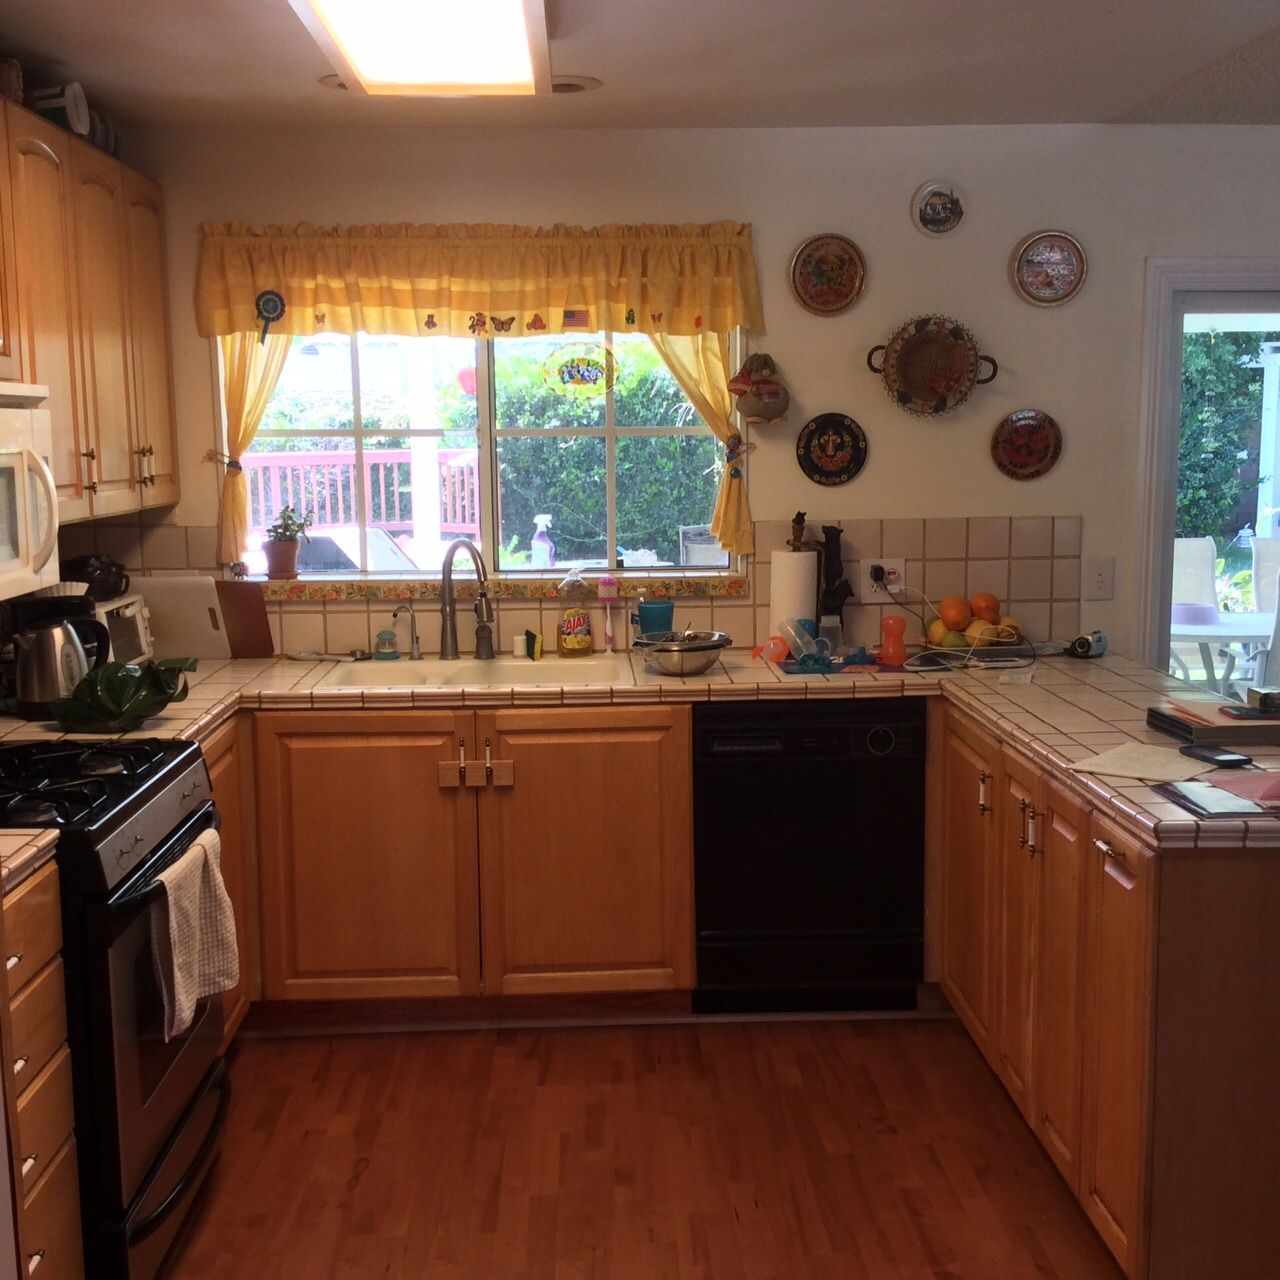 Refacing cabinets Simi Valley Kitchen space